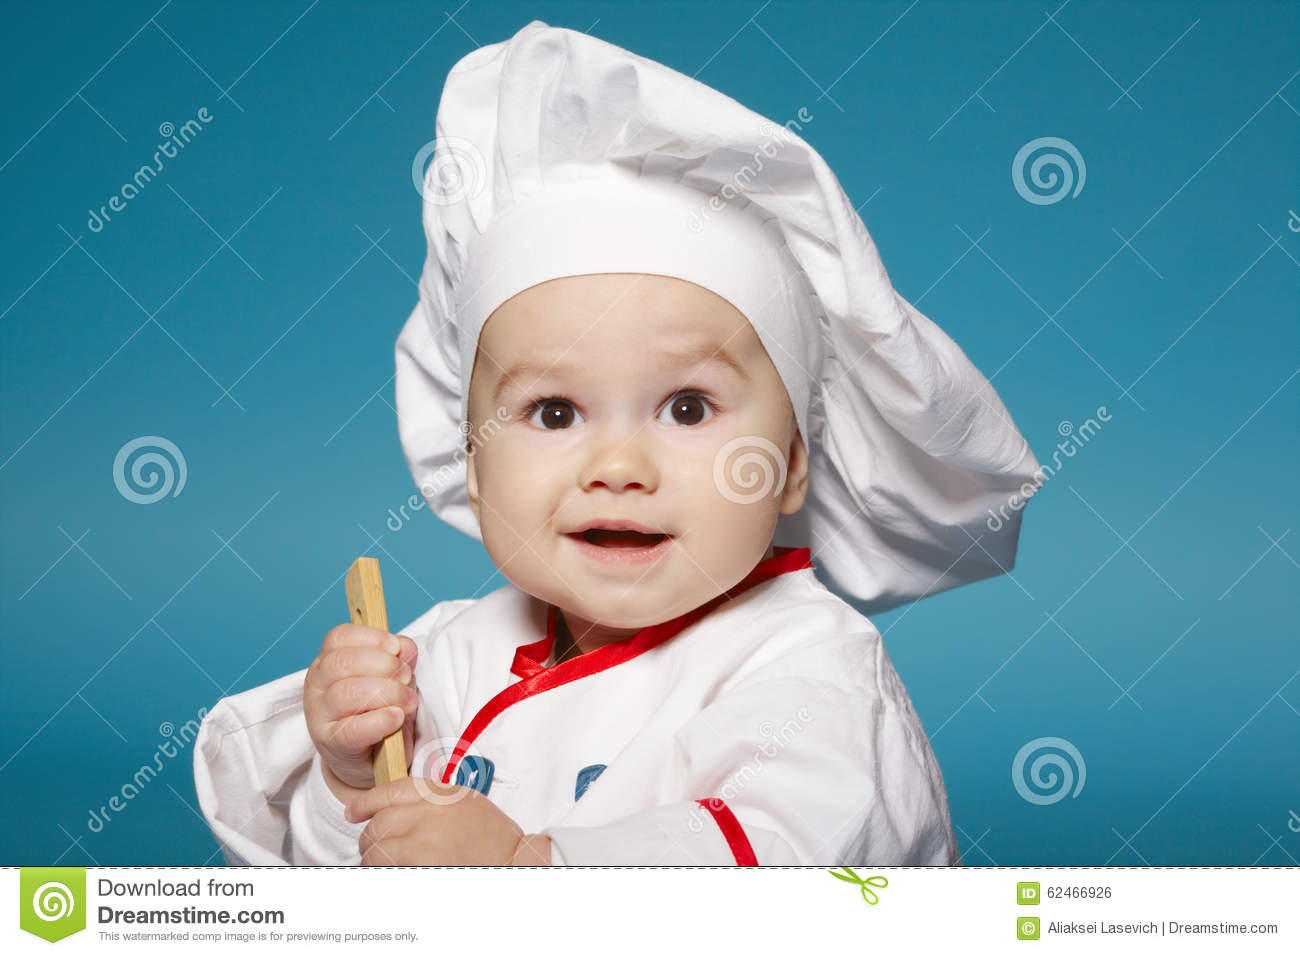 Cute little baby with chef hat